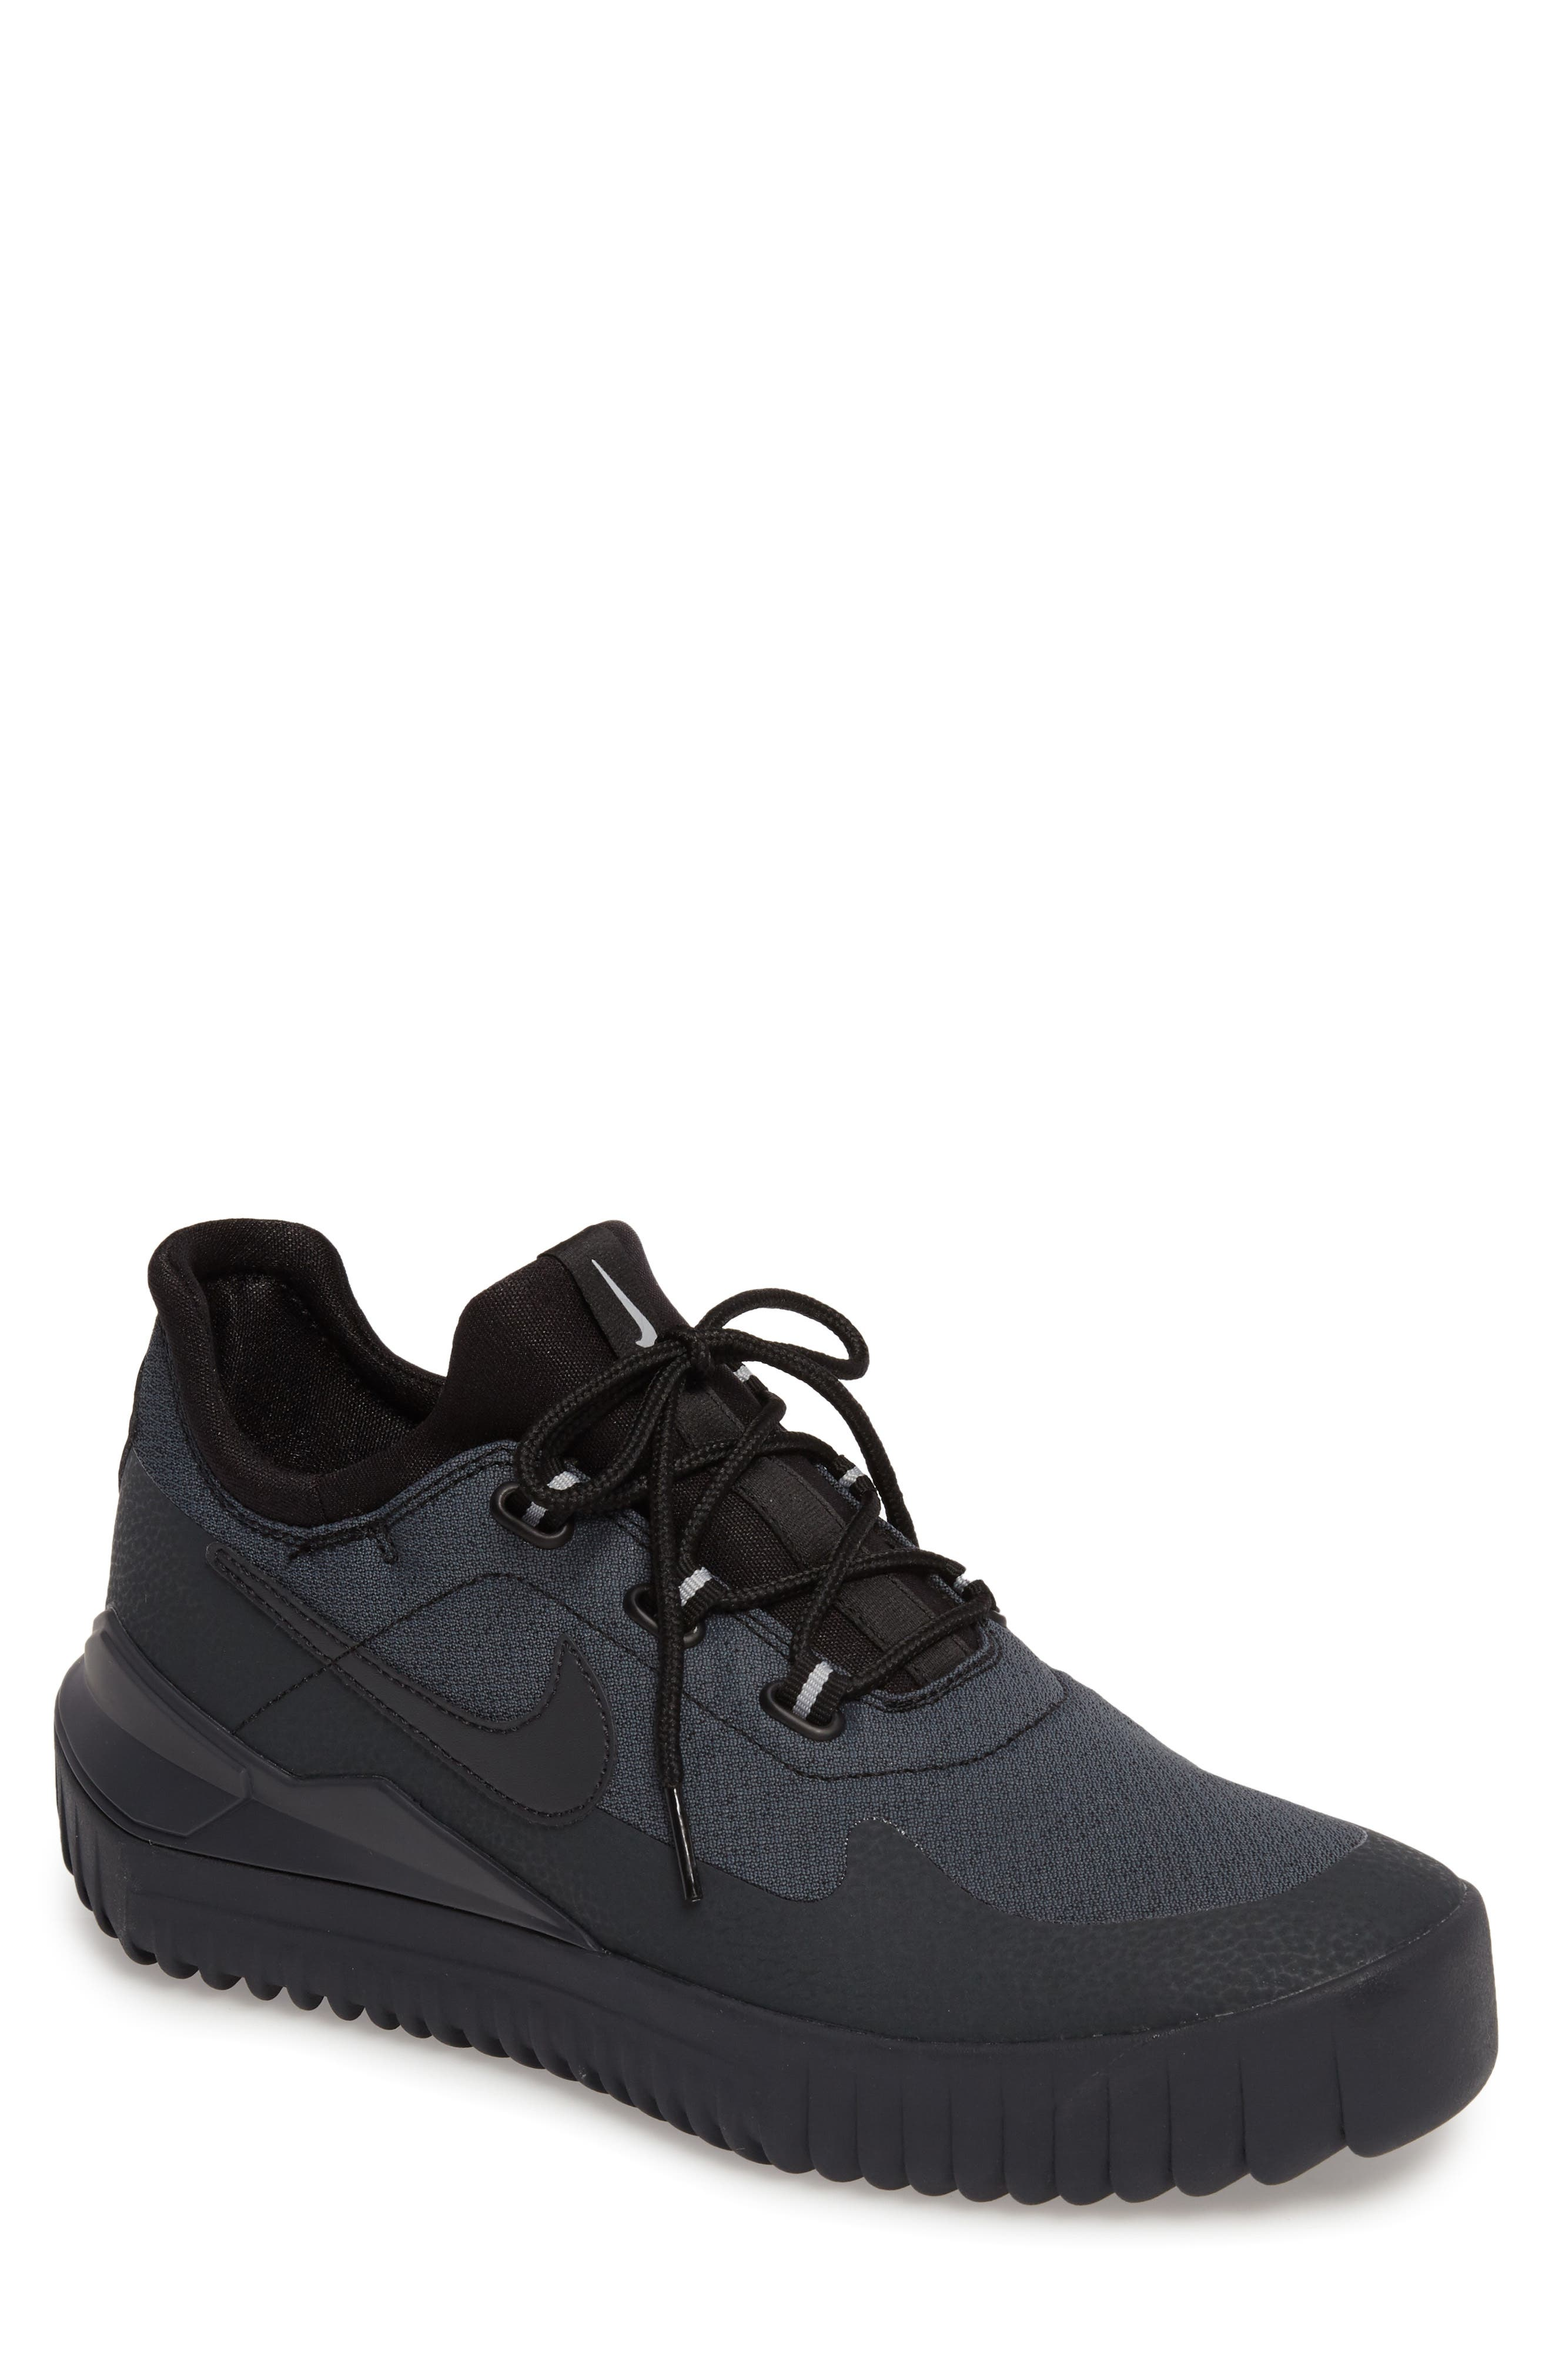 Air Wild Sneaker,                             Main thumbnail 1, color,                             Black/ Anthracite/ Grey